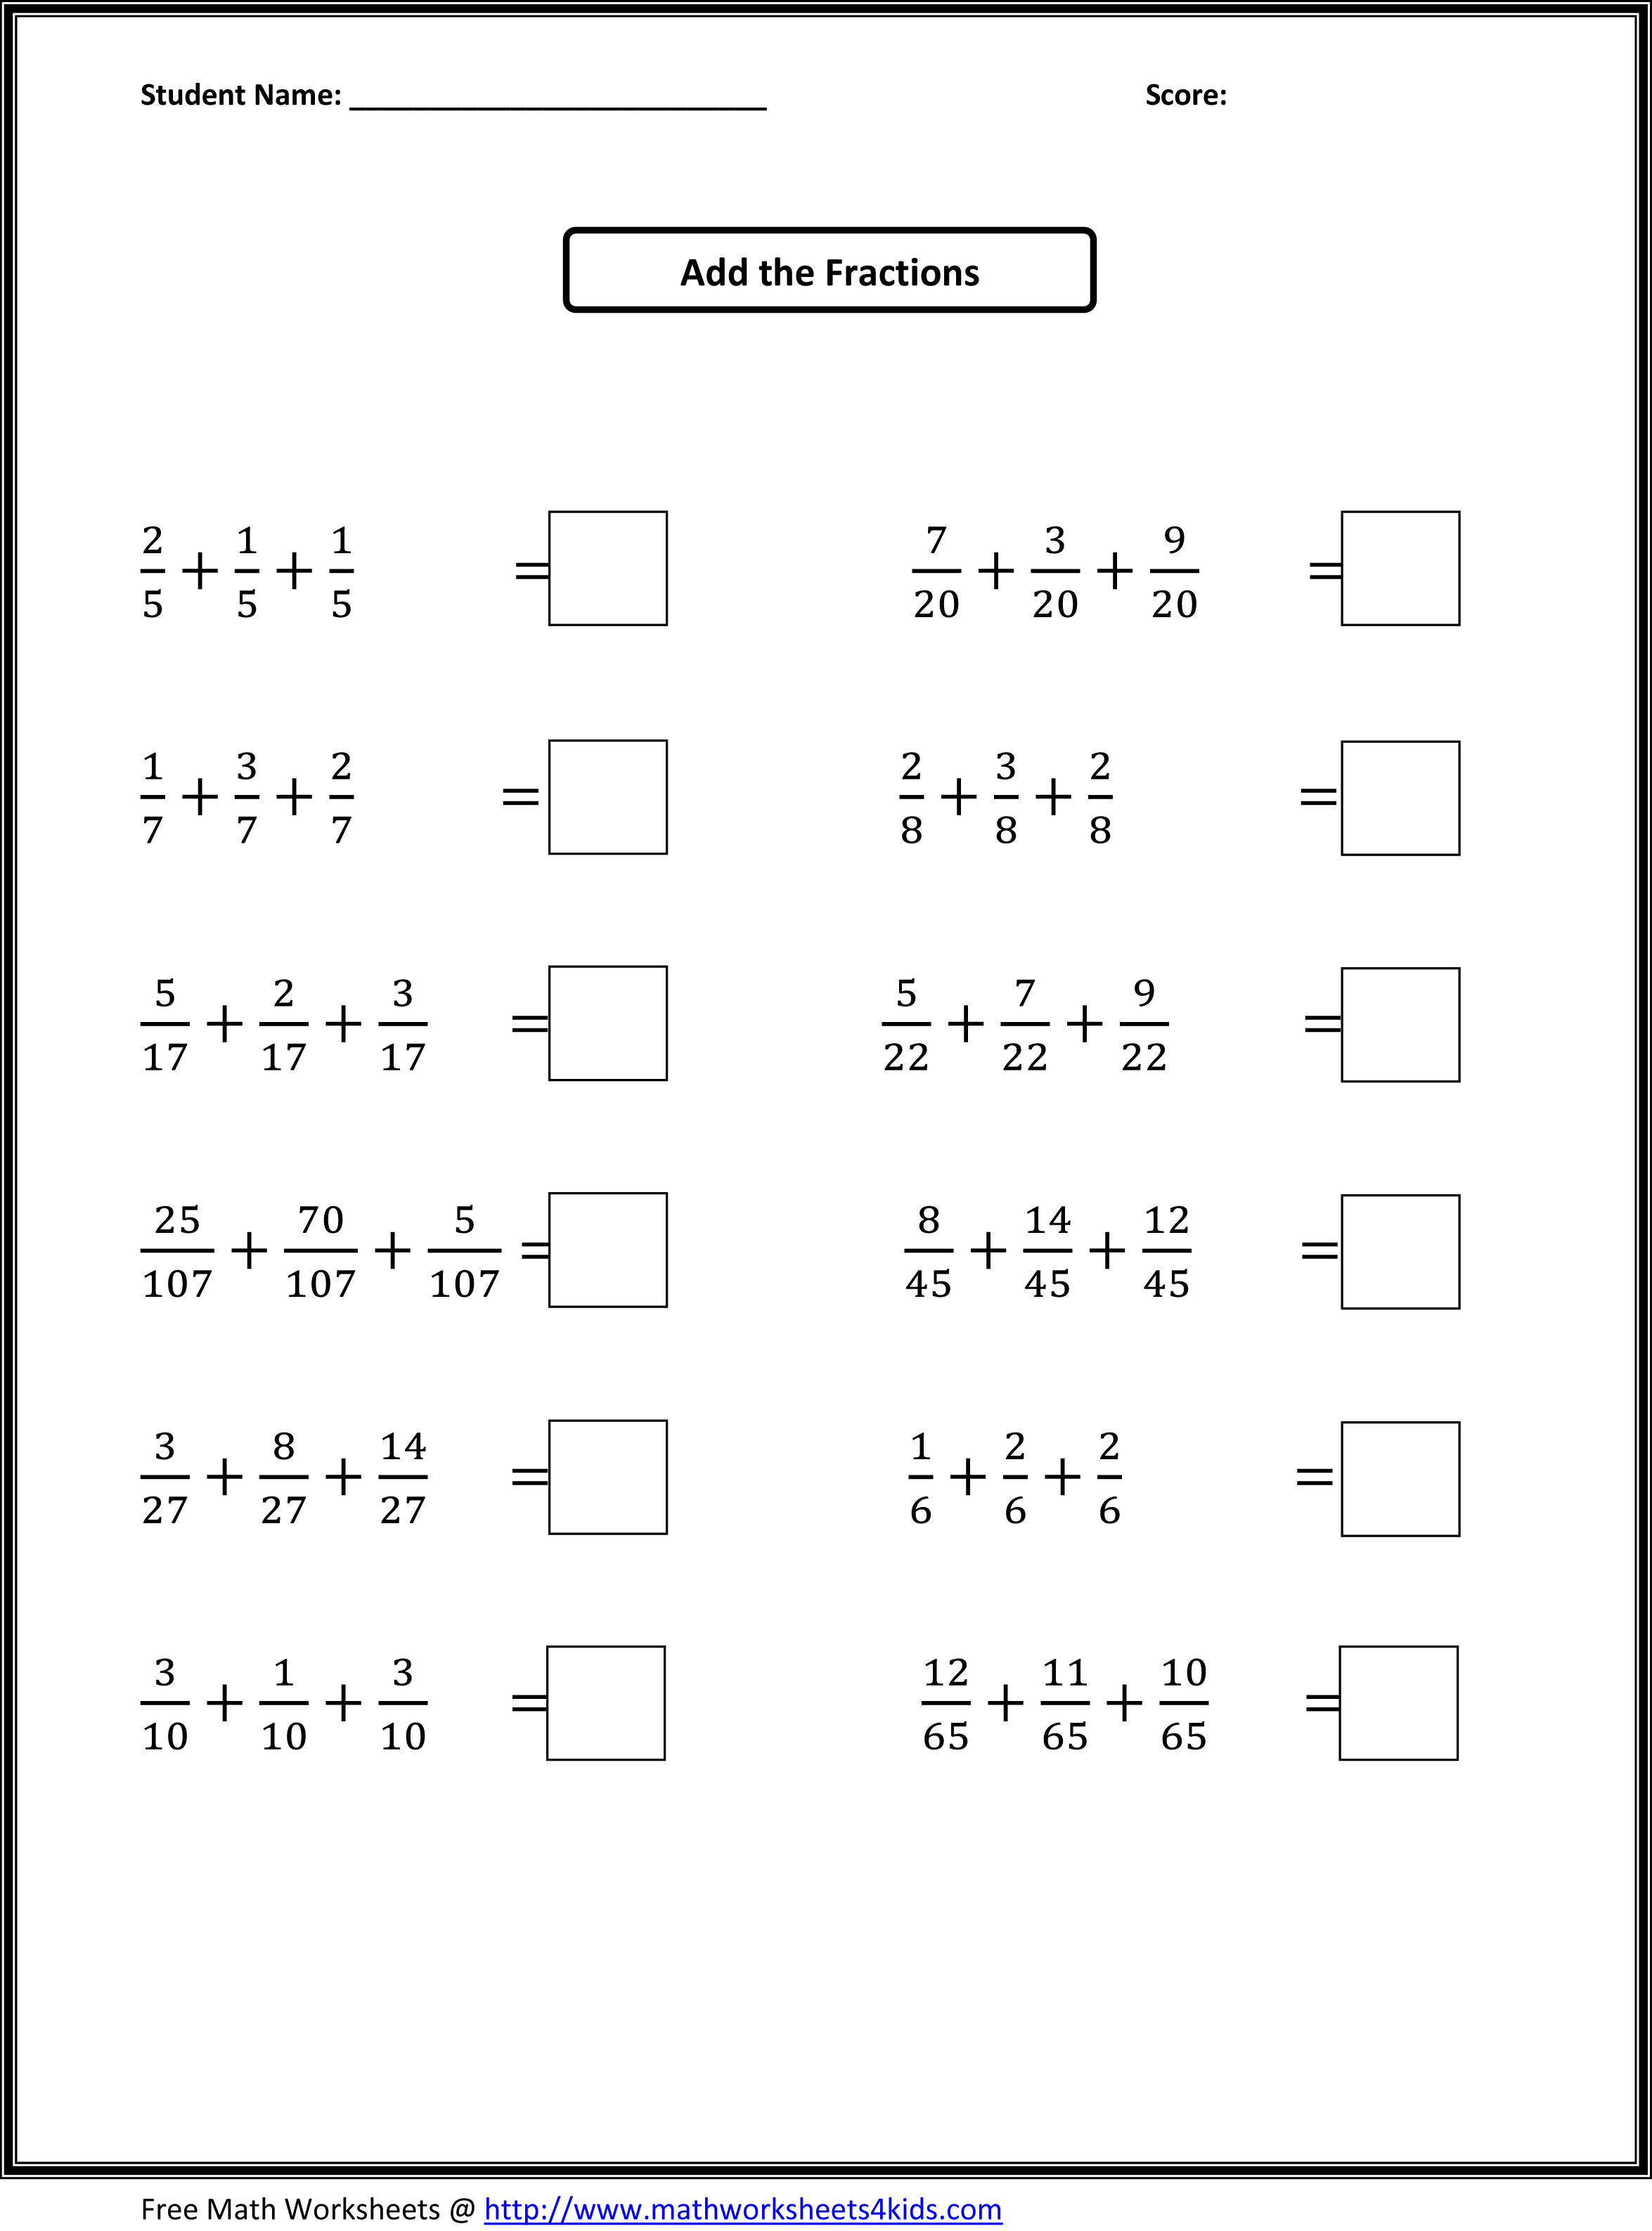 Printable 4th Grade Math Worksheets Work Calendar – 4th Grade Worksheets